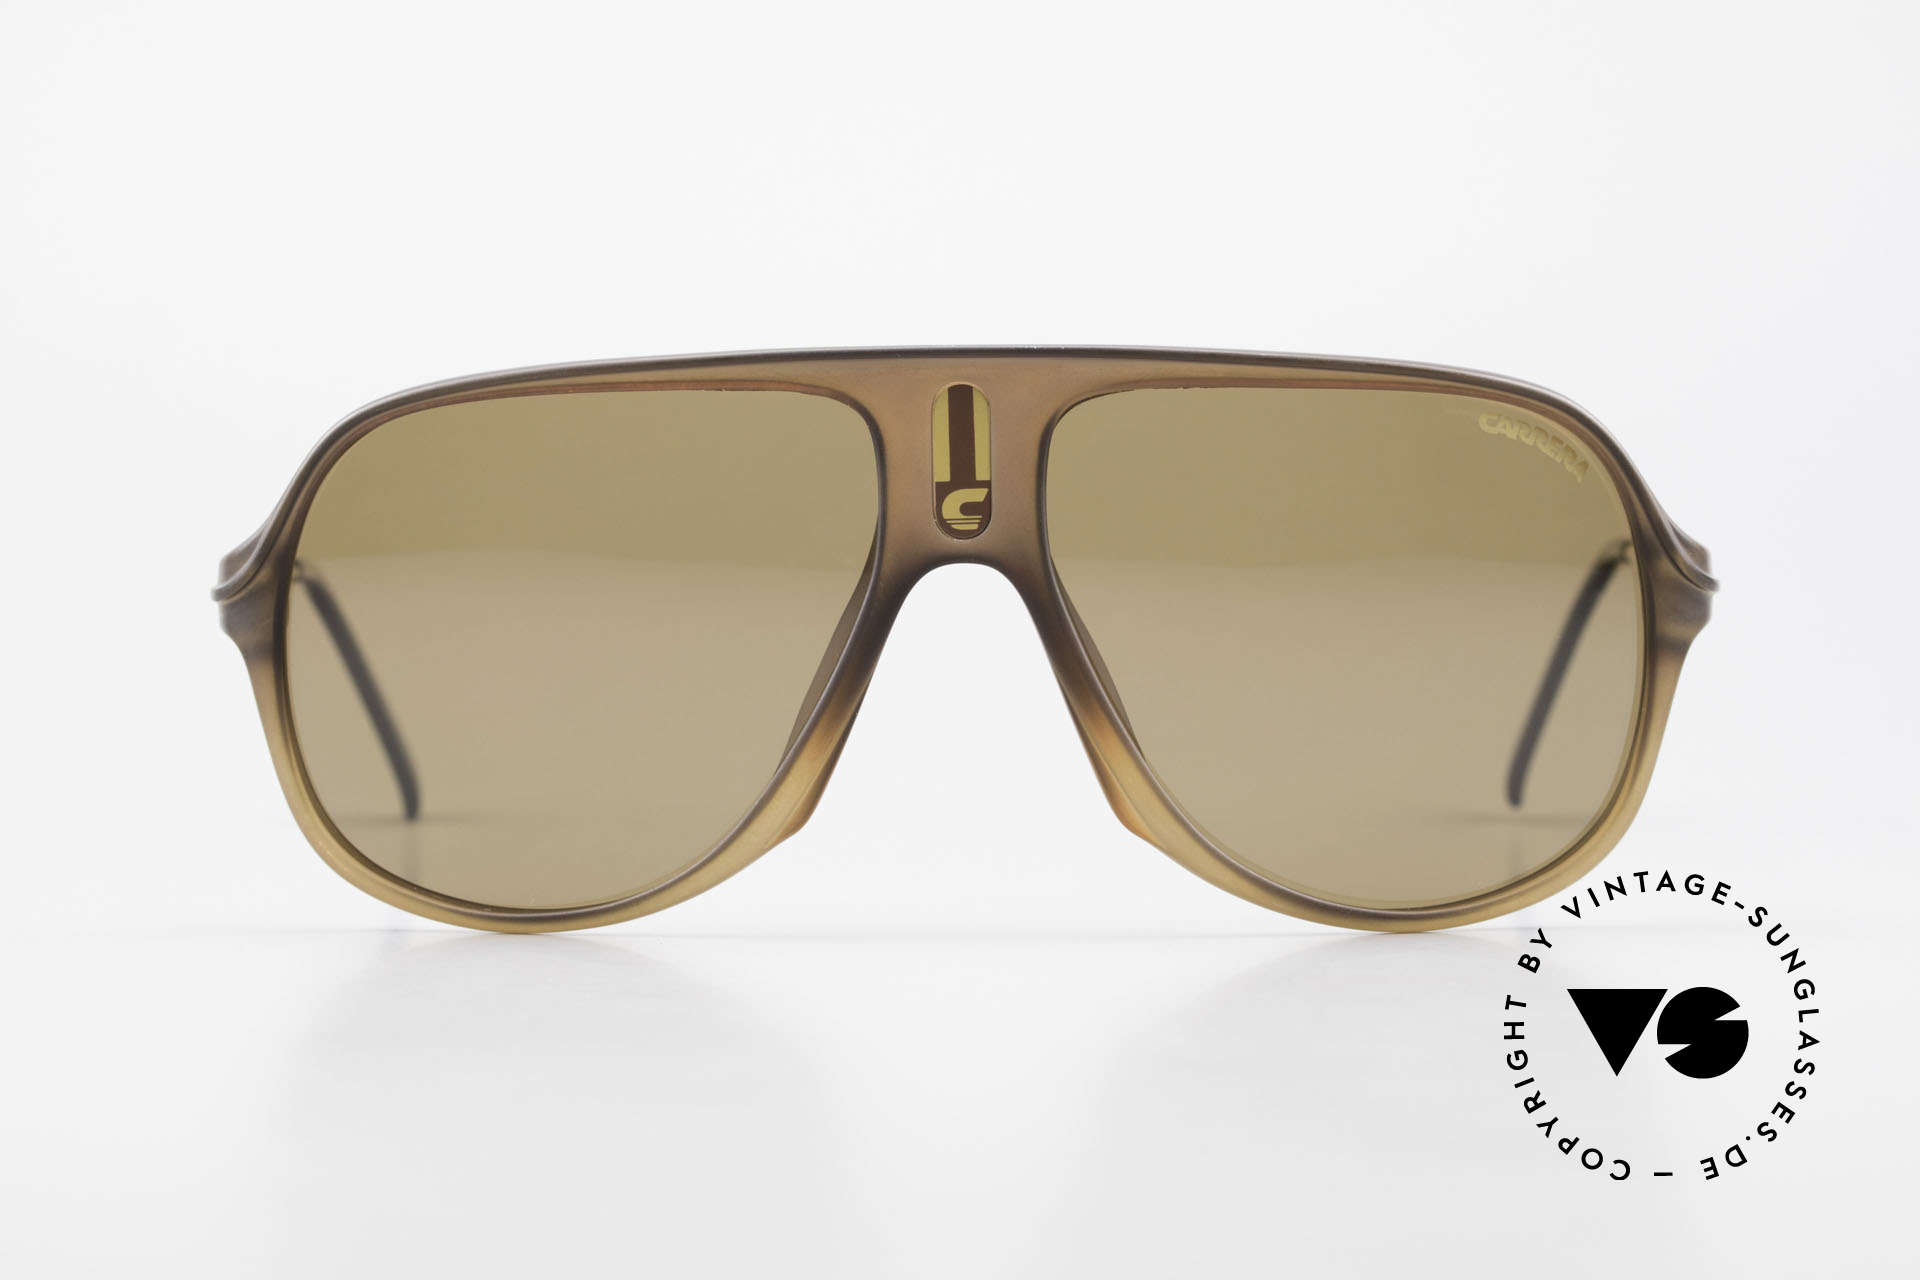 Carrera 5547 Polarized 80's Sunglasses, very sturdy frame by famous Optyl (1st class quality), Made for Men